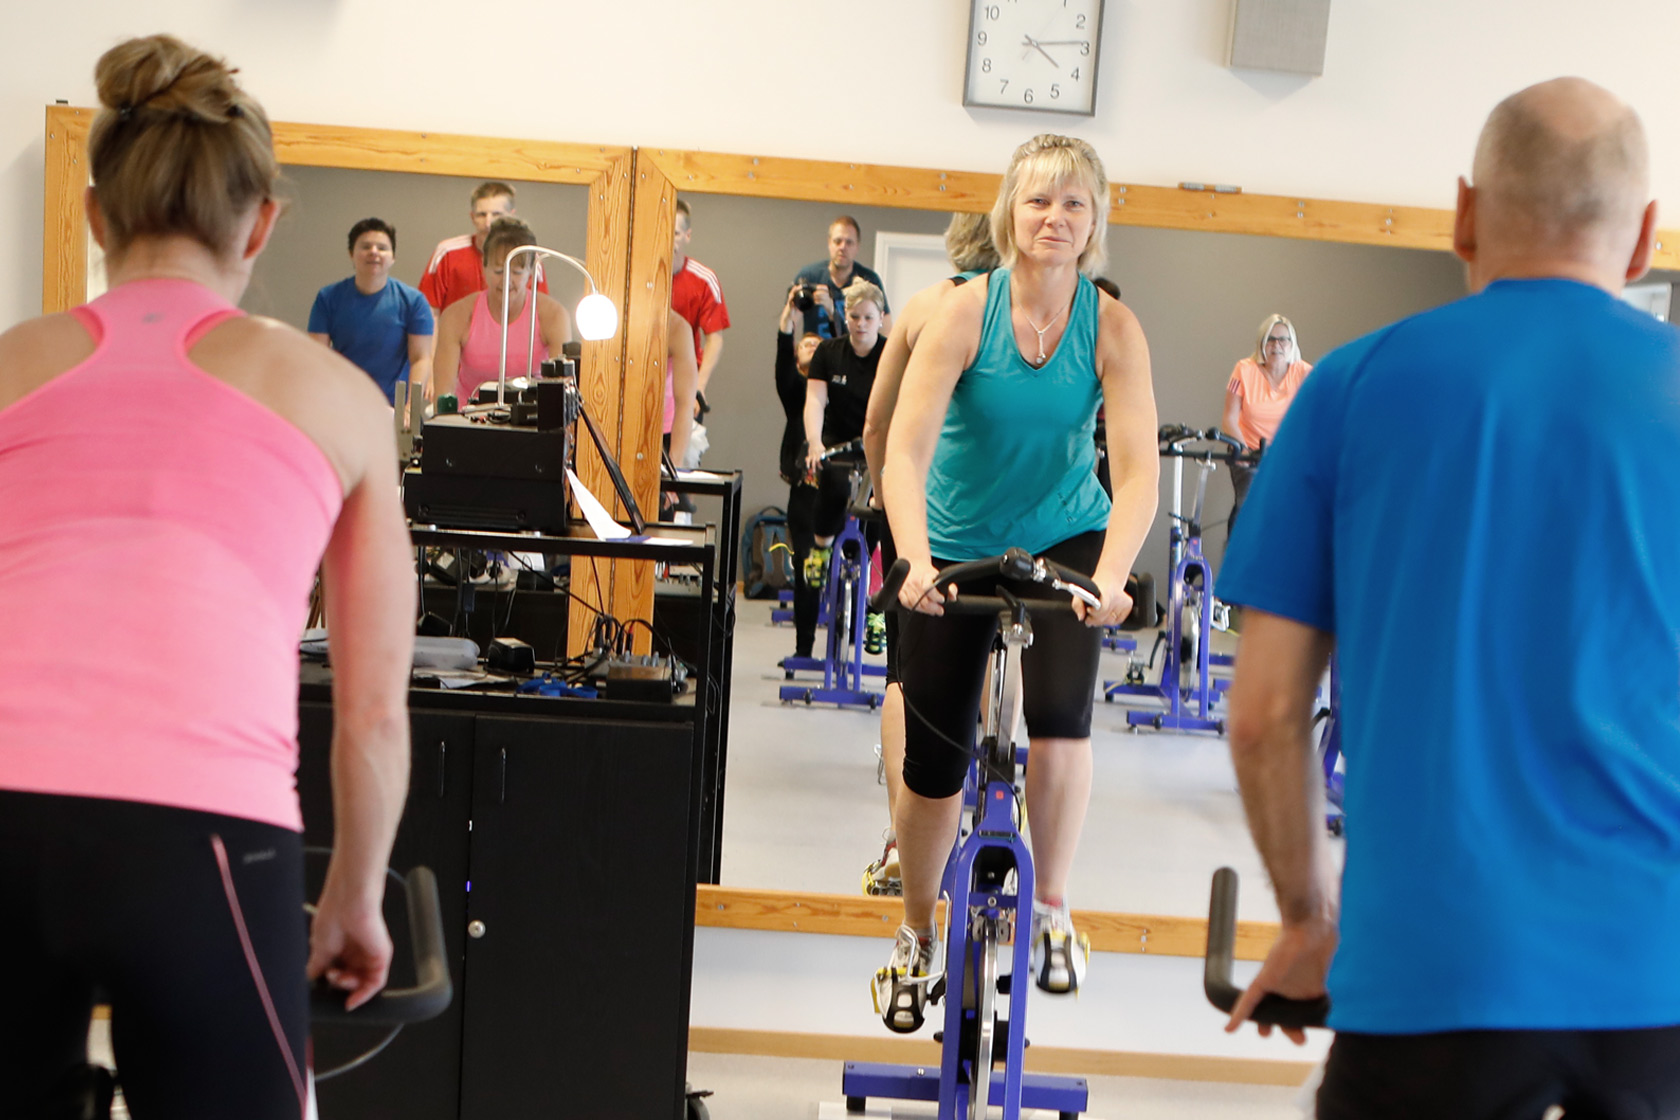 People exercising in a spin class